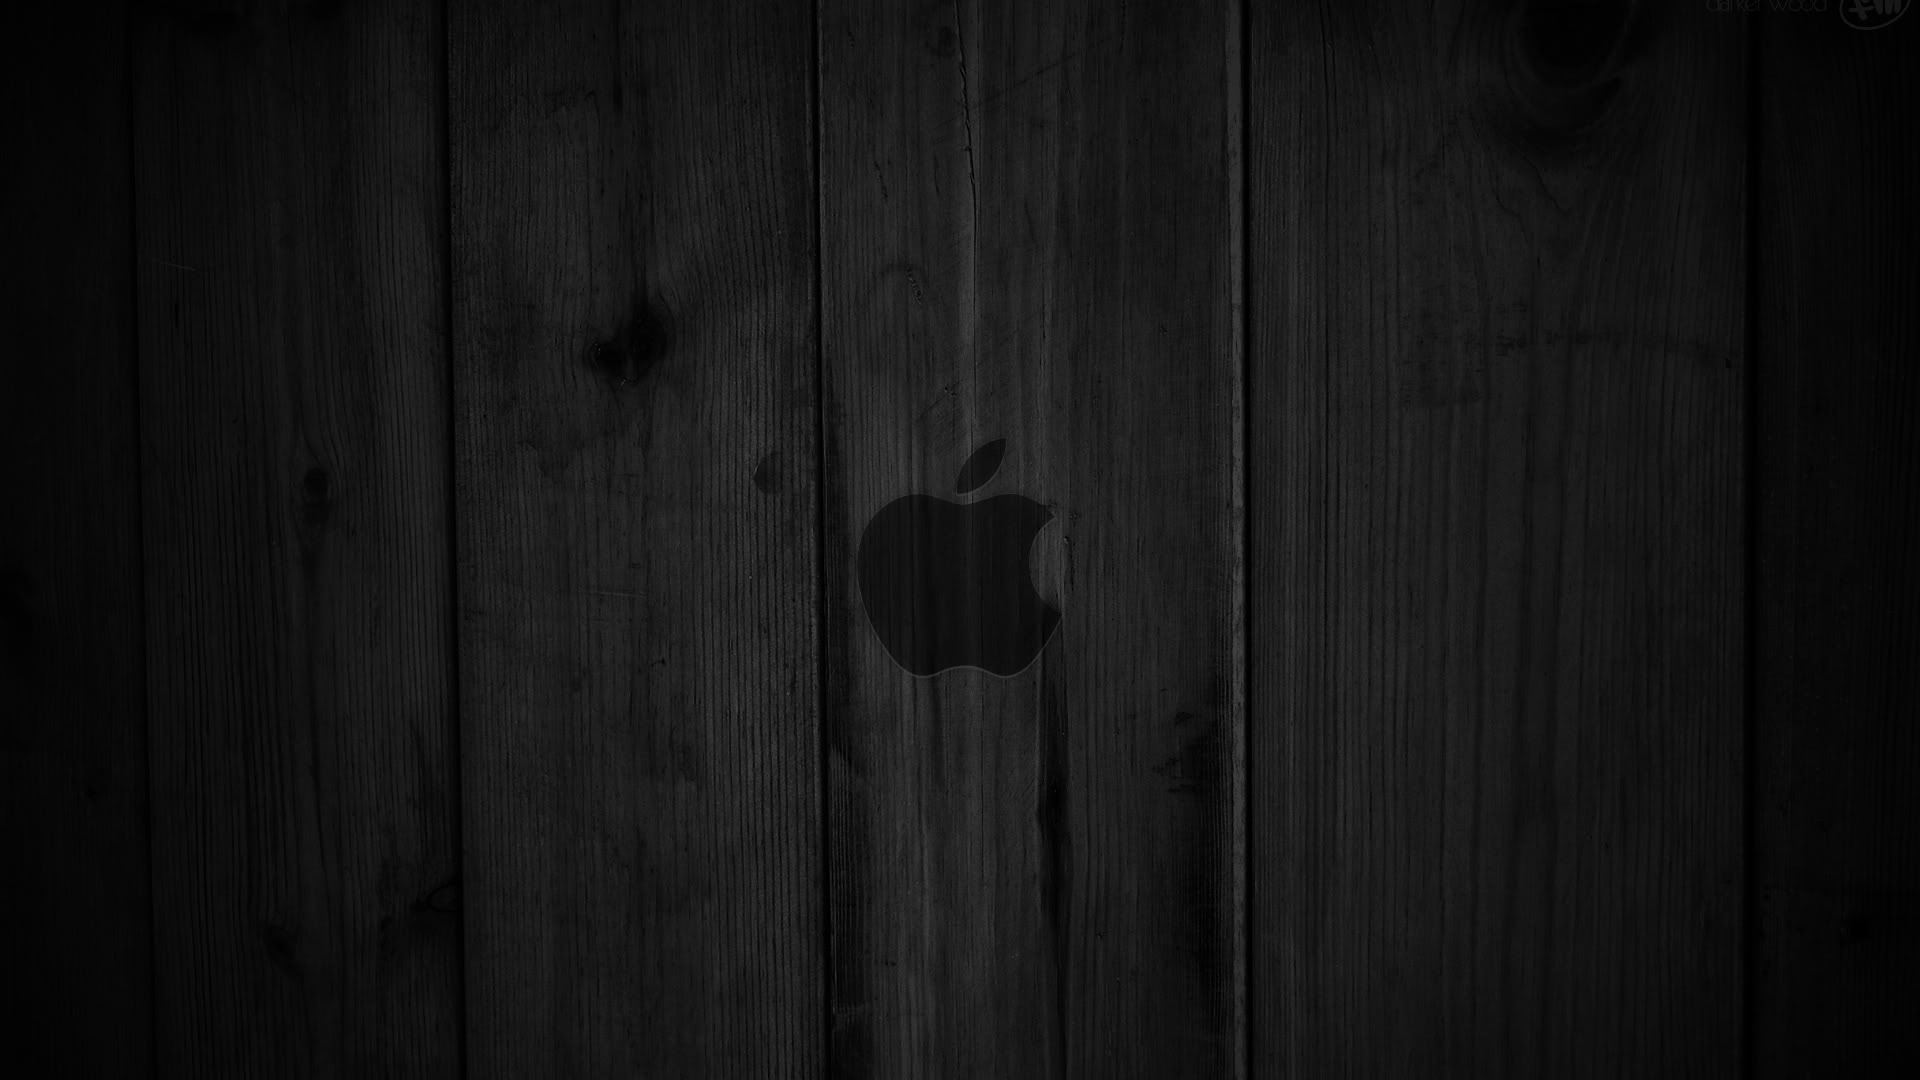 Dark Wood with Mac Apple Wallpapers